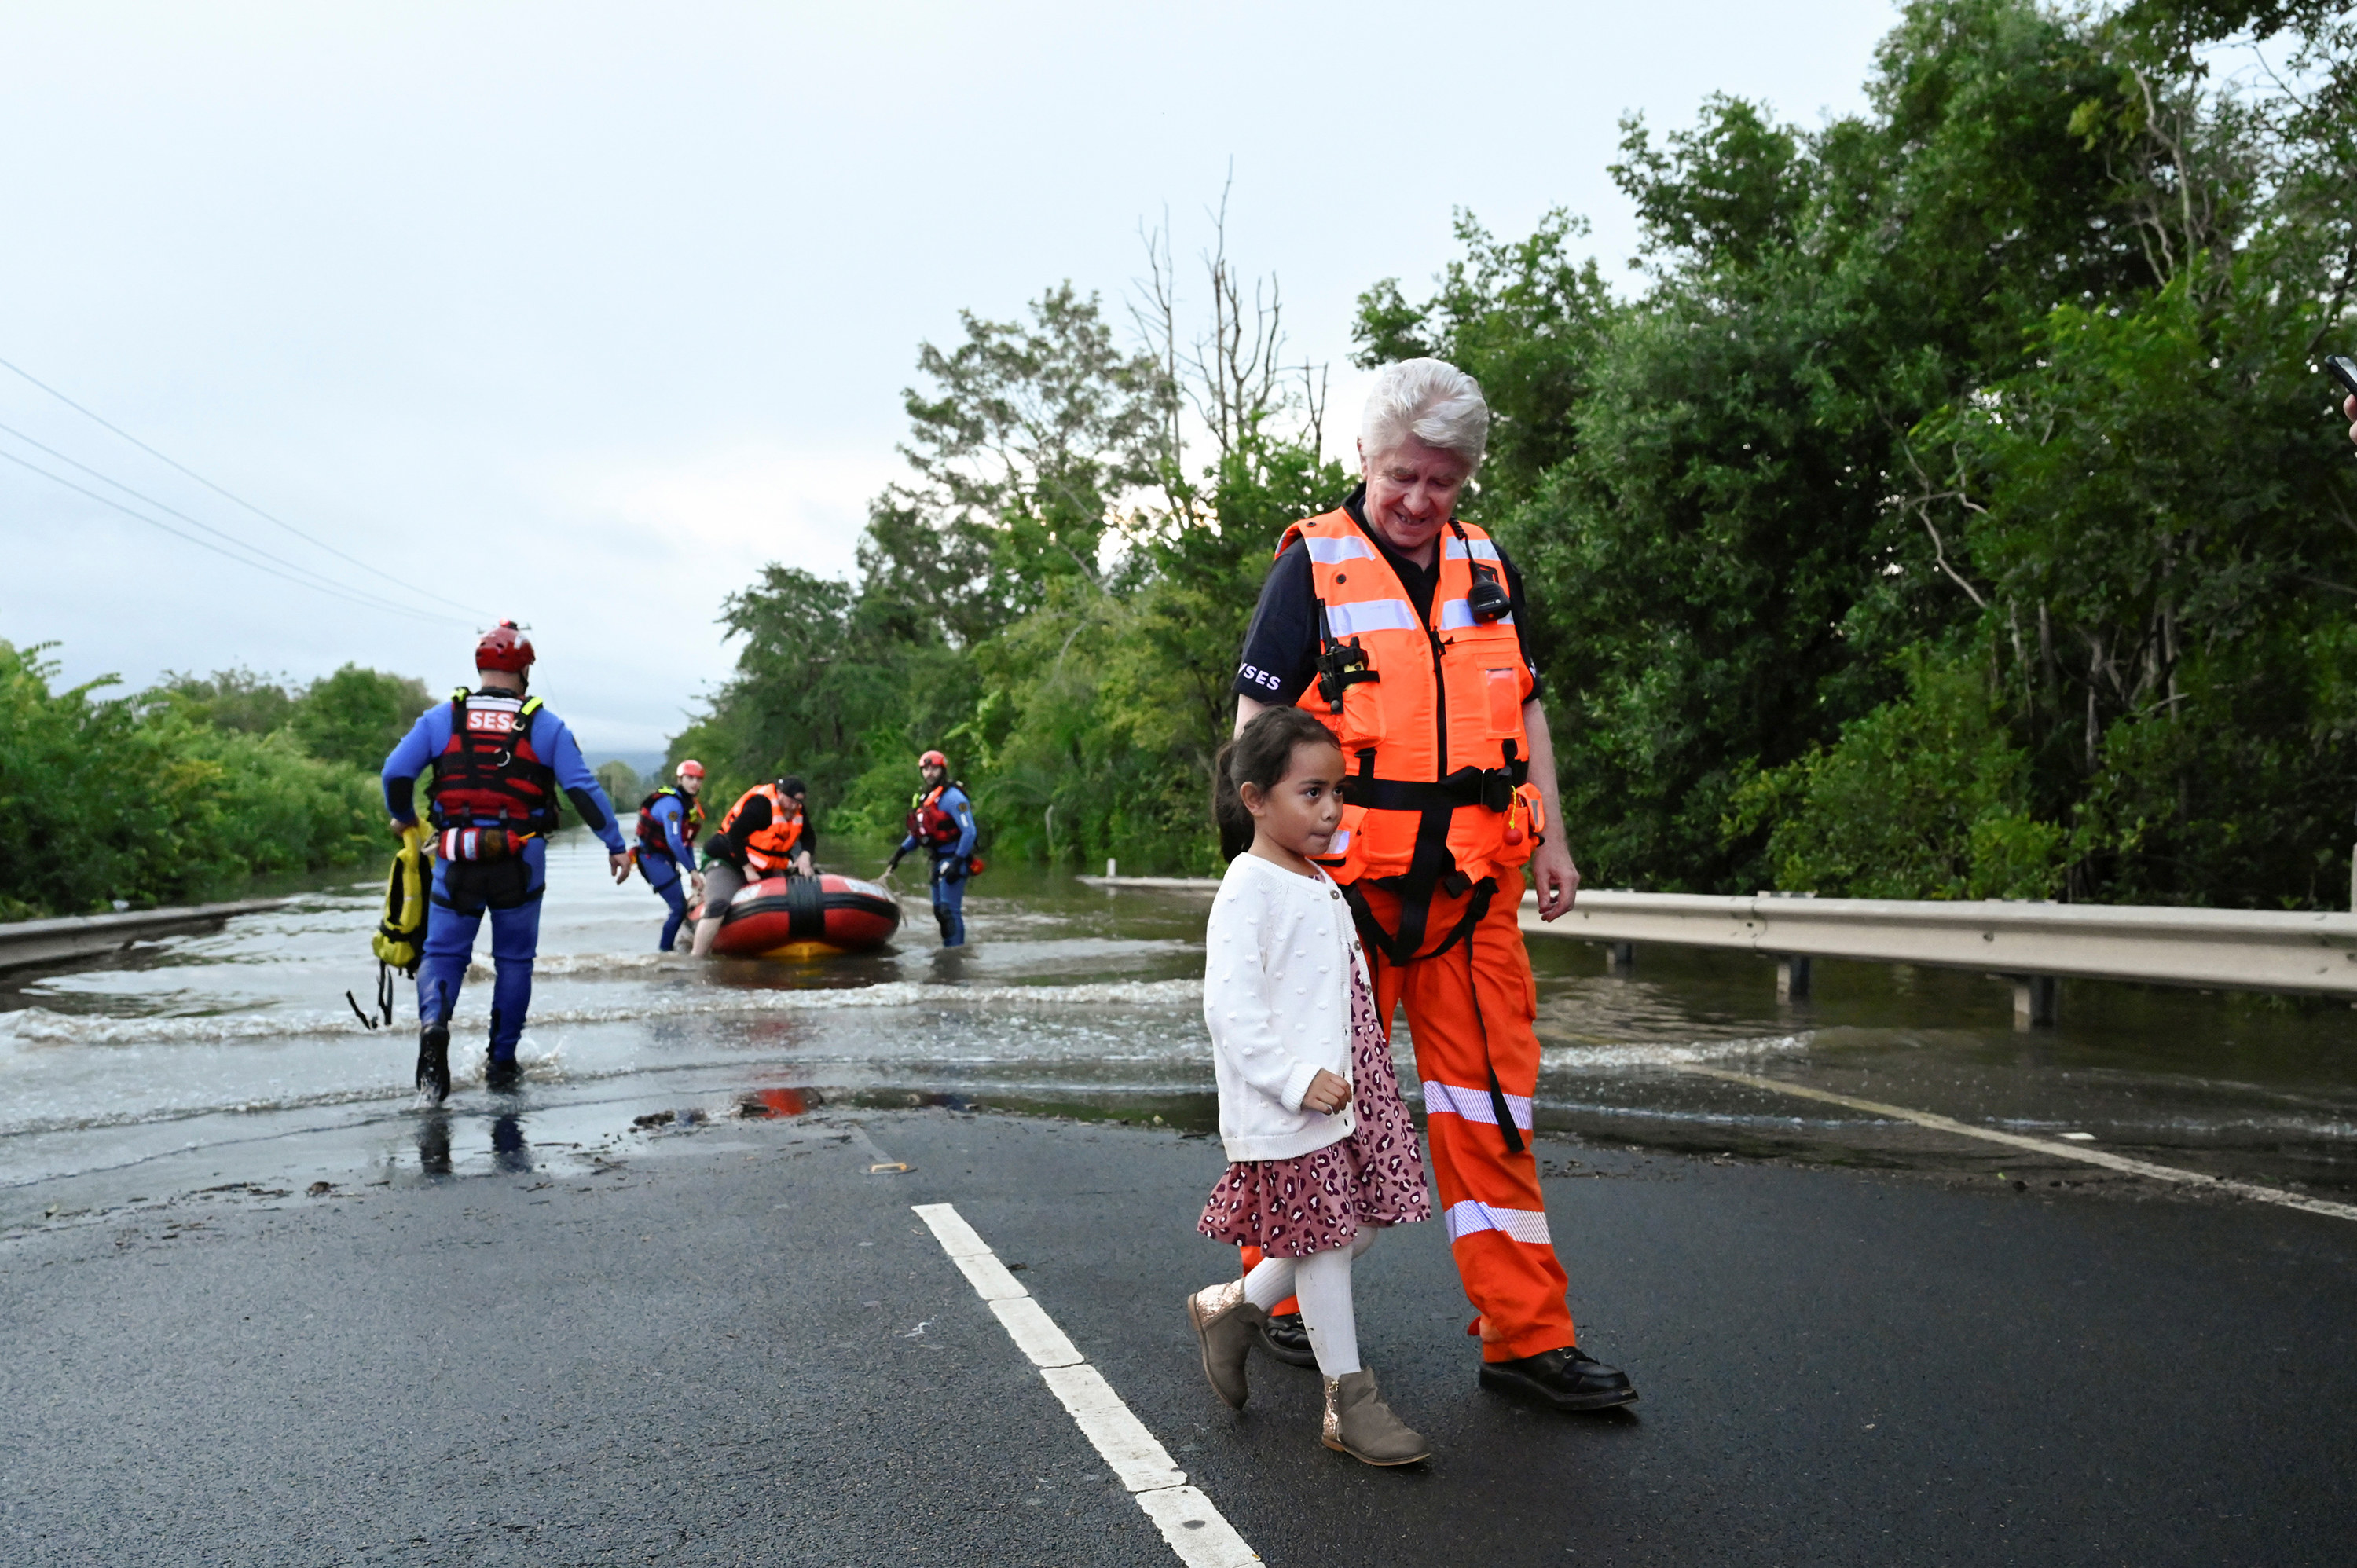 A woman in a drysuit escorts a young girl away from floodwater, behind them two workers assist a man getting out of the boat